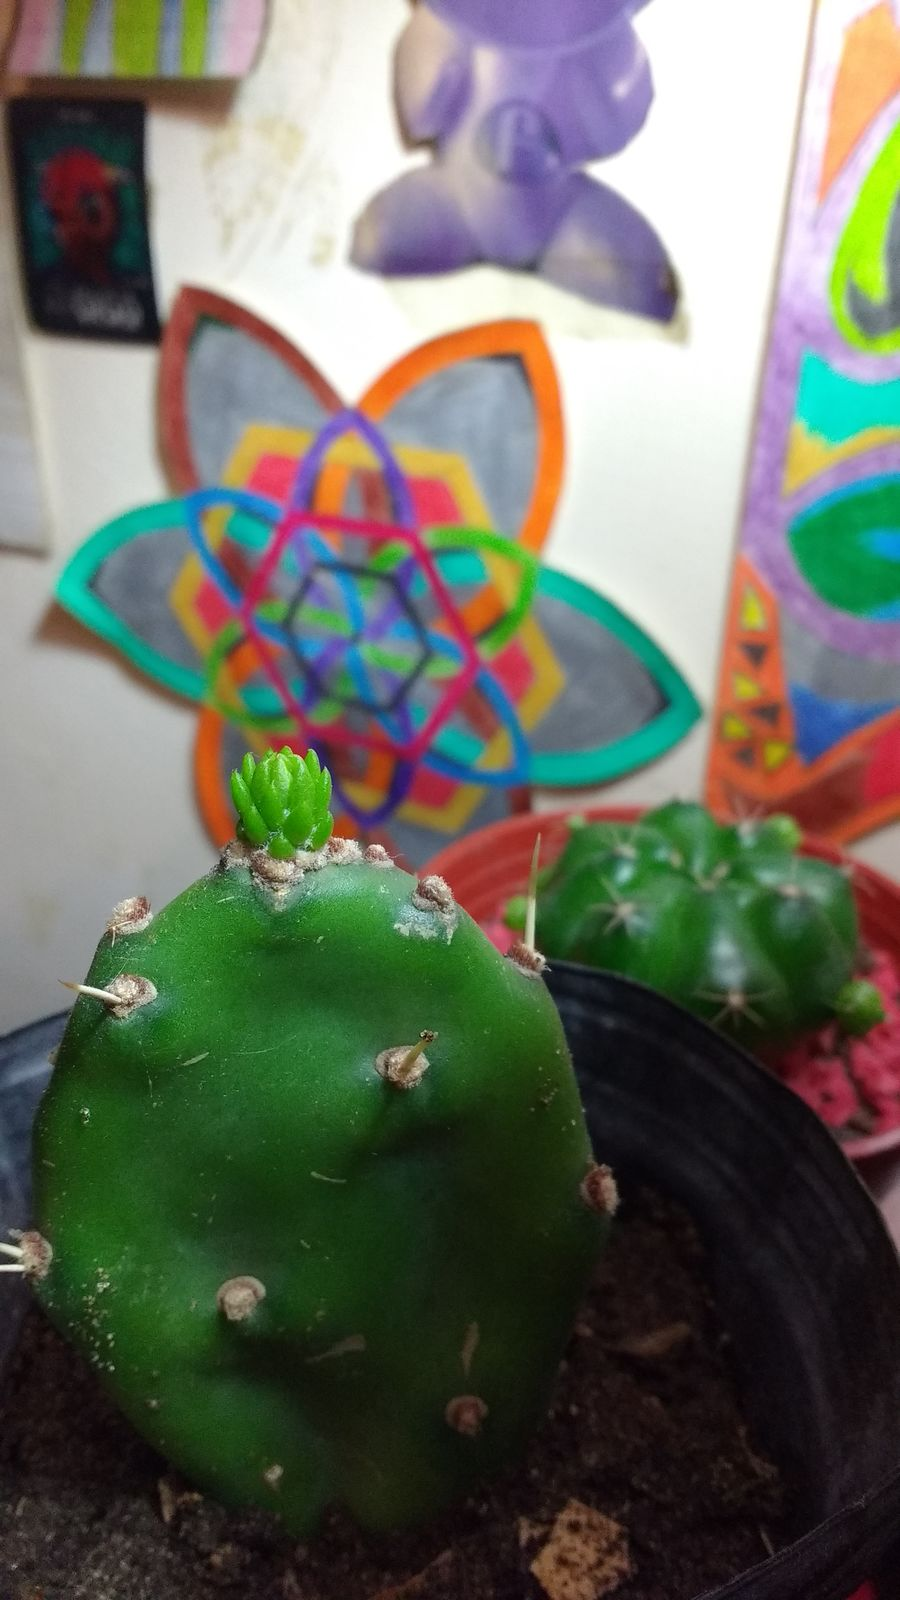 Hello World Taking Photos By Hand Detail Cactus Garden Cactusporn Cactus Plant Plants And Flowers Plants Green Colors Colorful Light EyeEm Gallery Check This Out Ya Casi